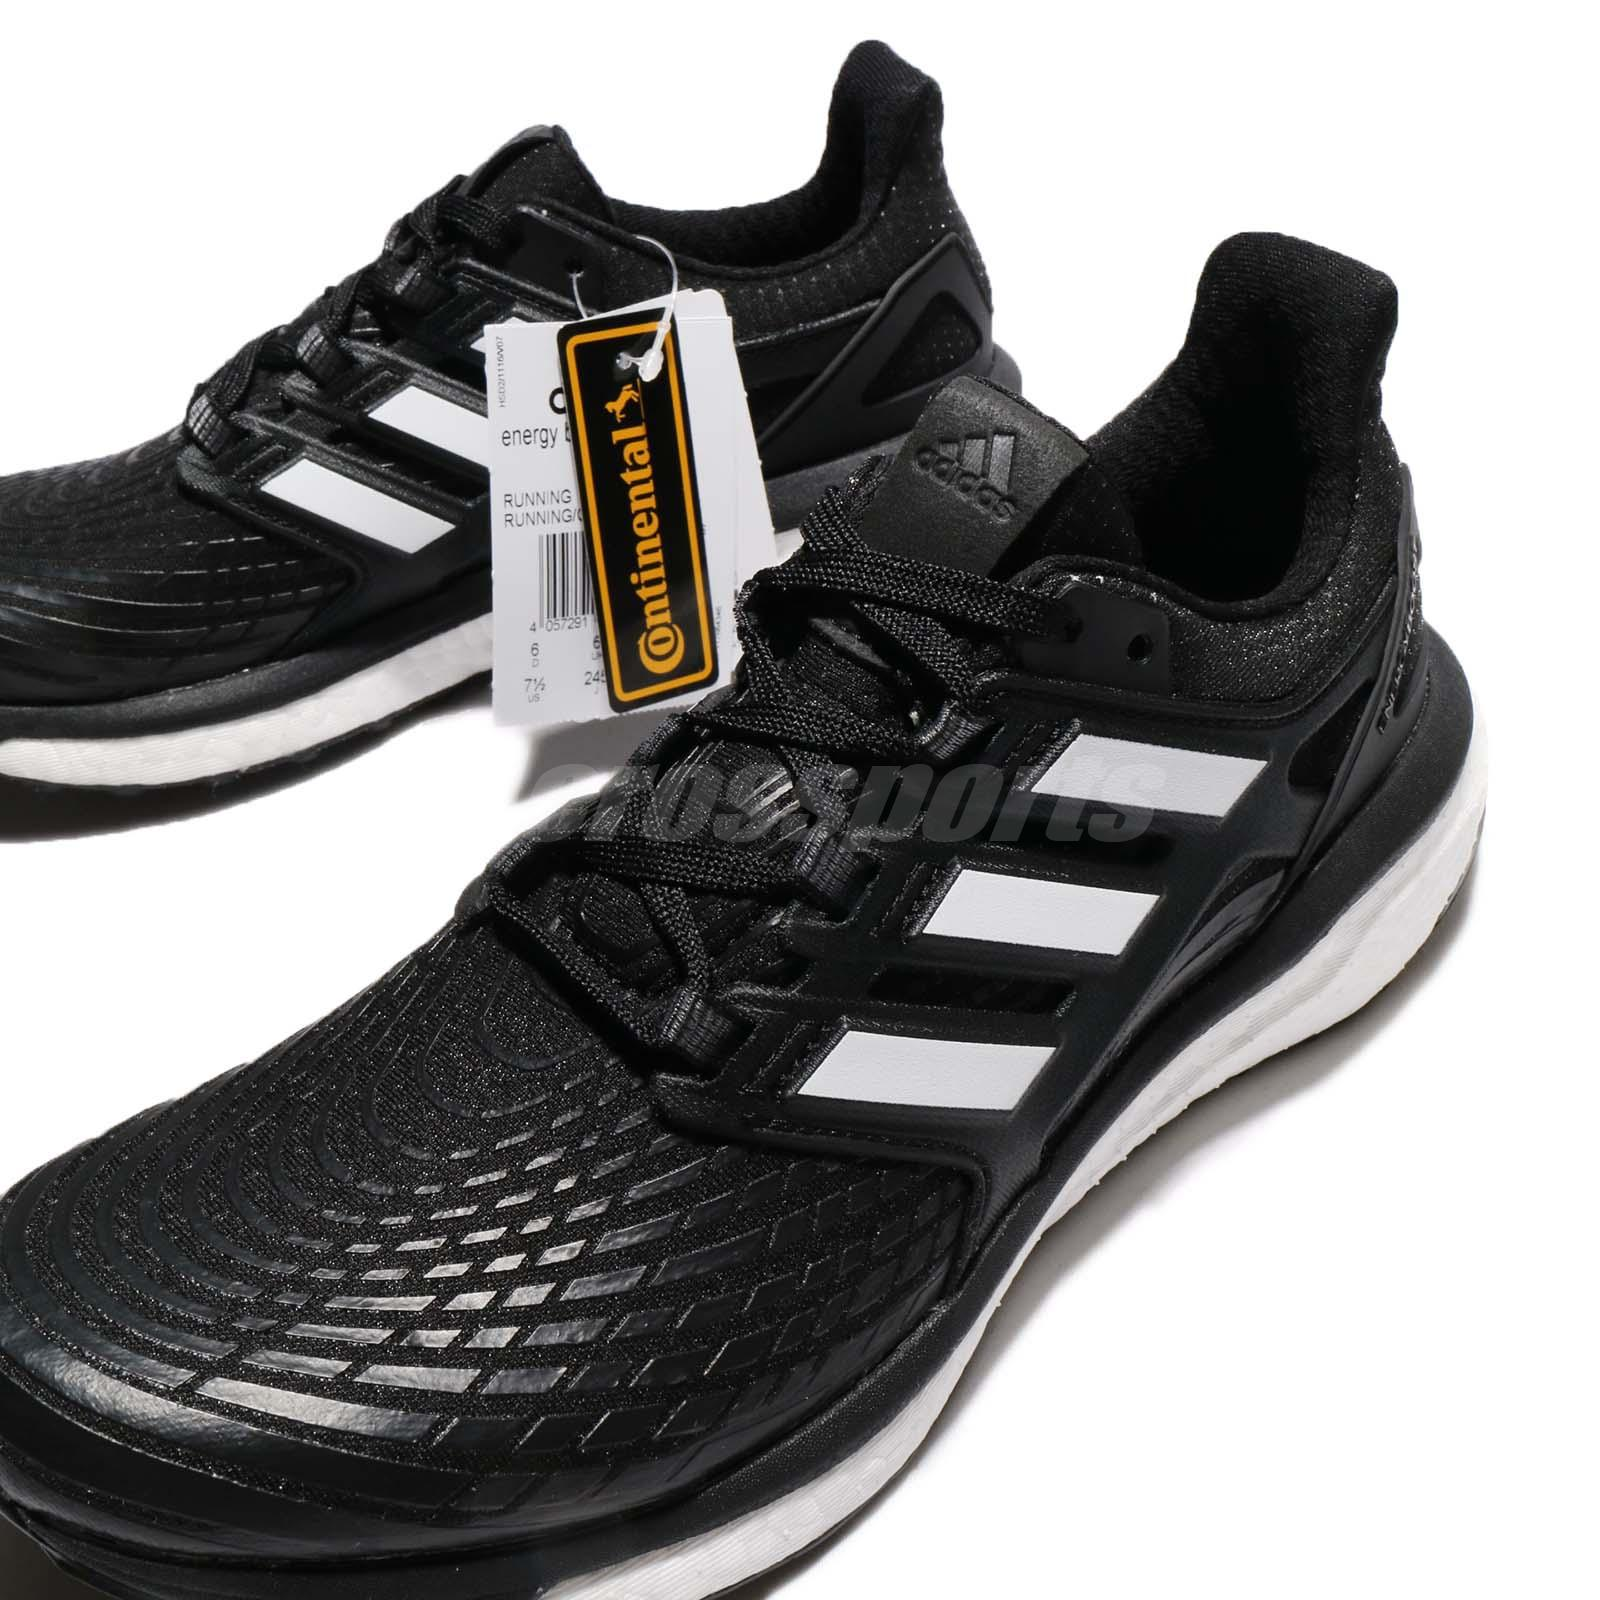 963a8bd411d0 ... coupon code for adidas energy boost m continental black white men  running shoes 01781 52944